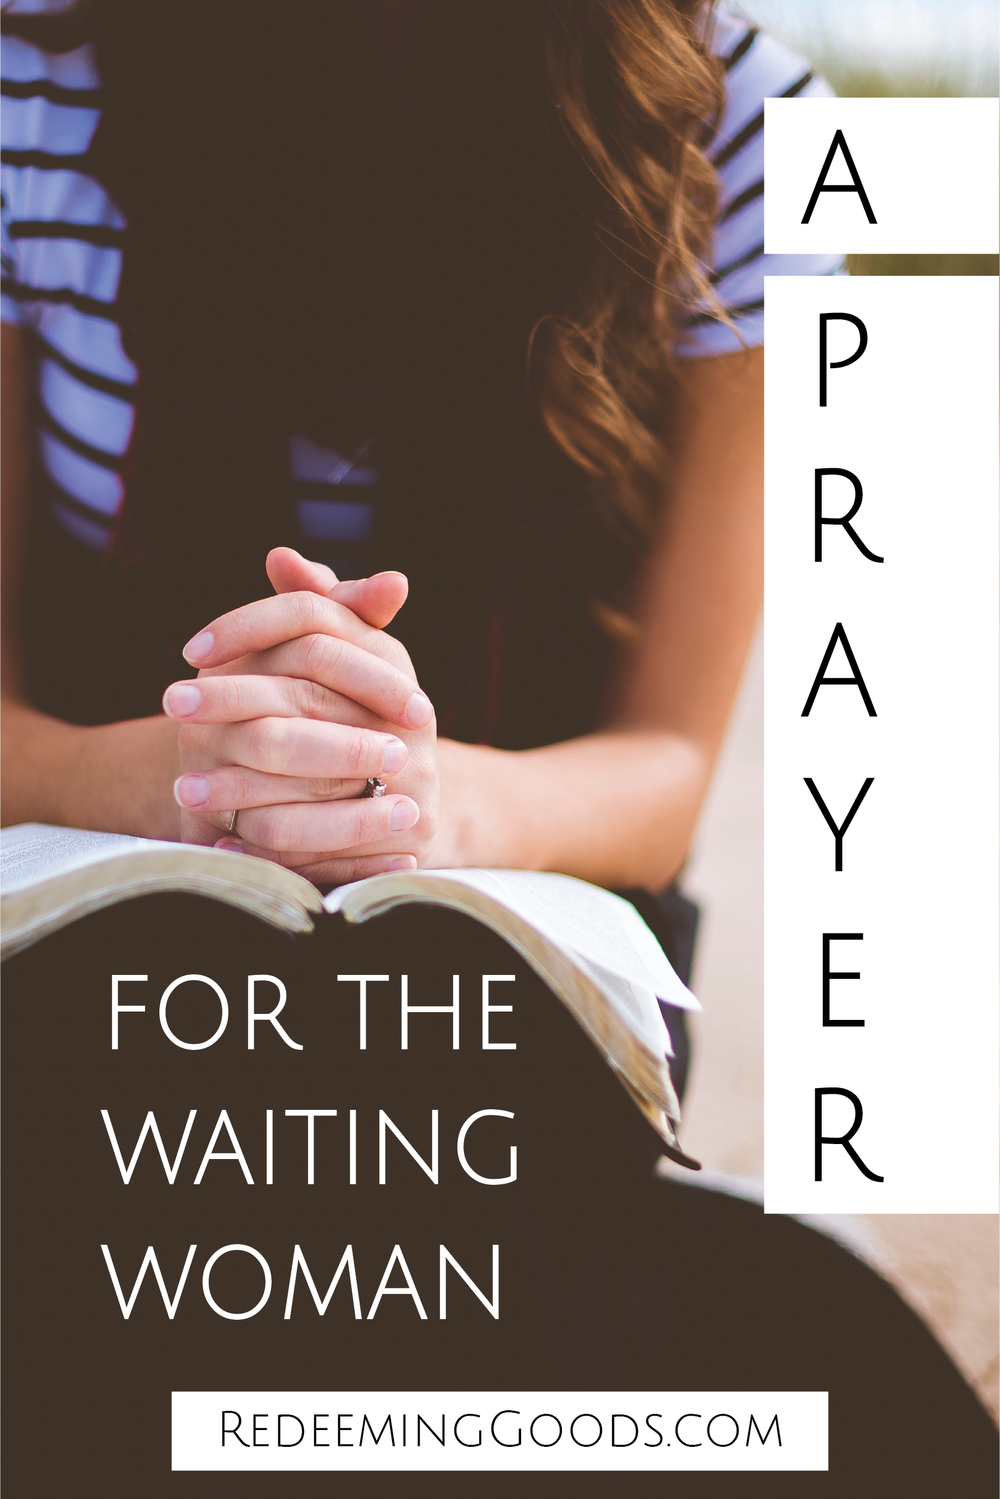 Prayer for the Waiting Woman pins_Long Pin 3 Redeeming Goods.png